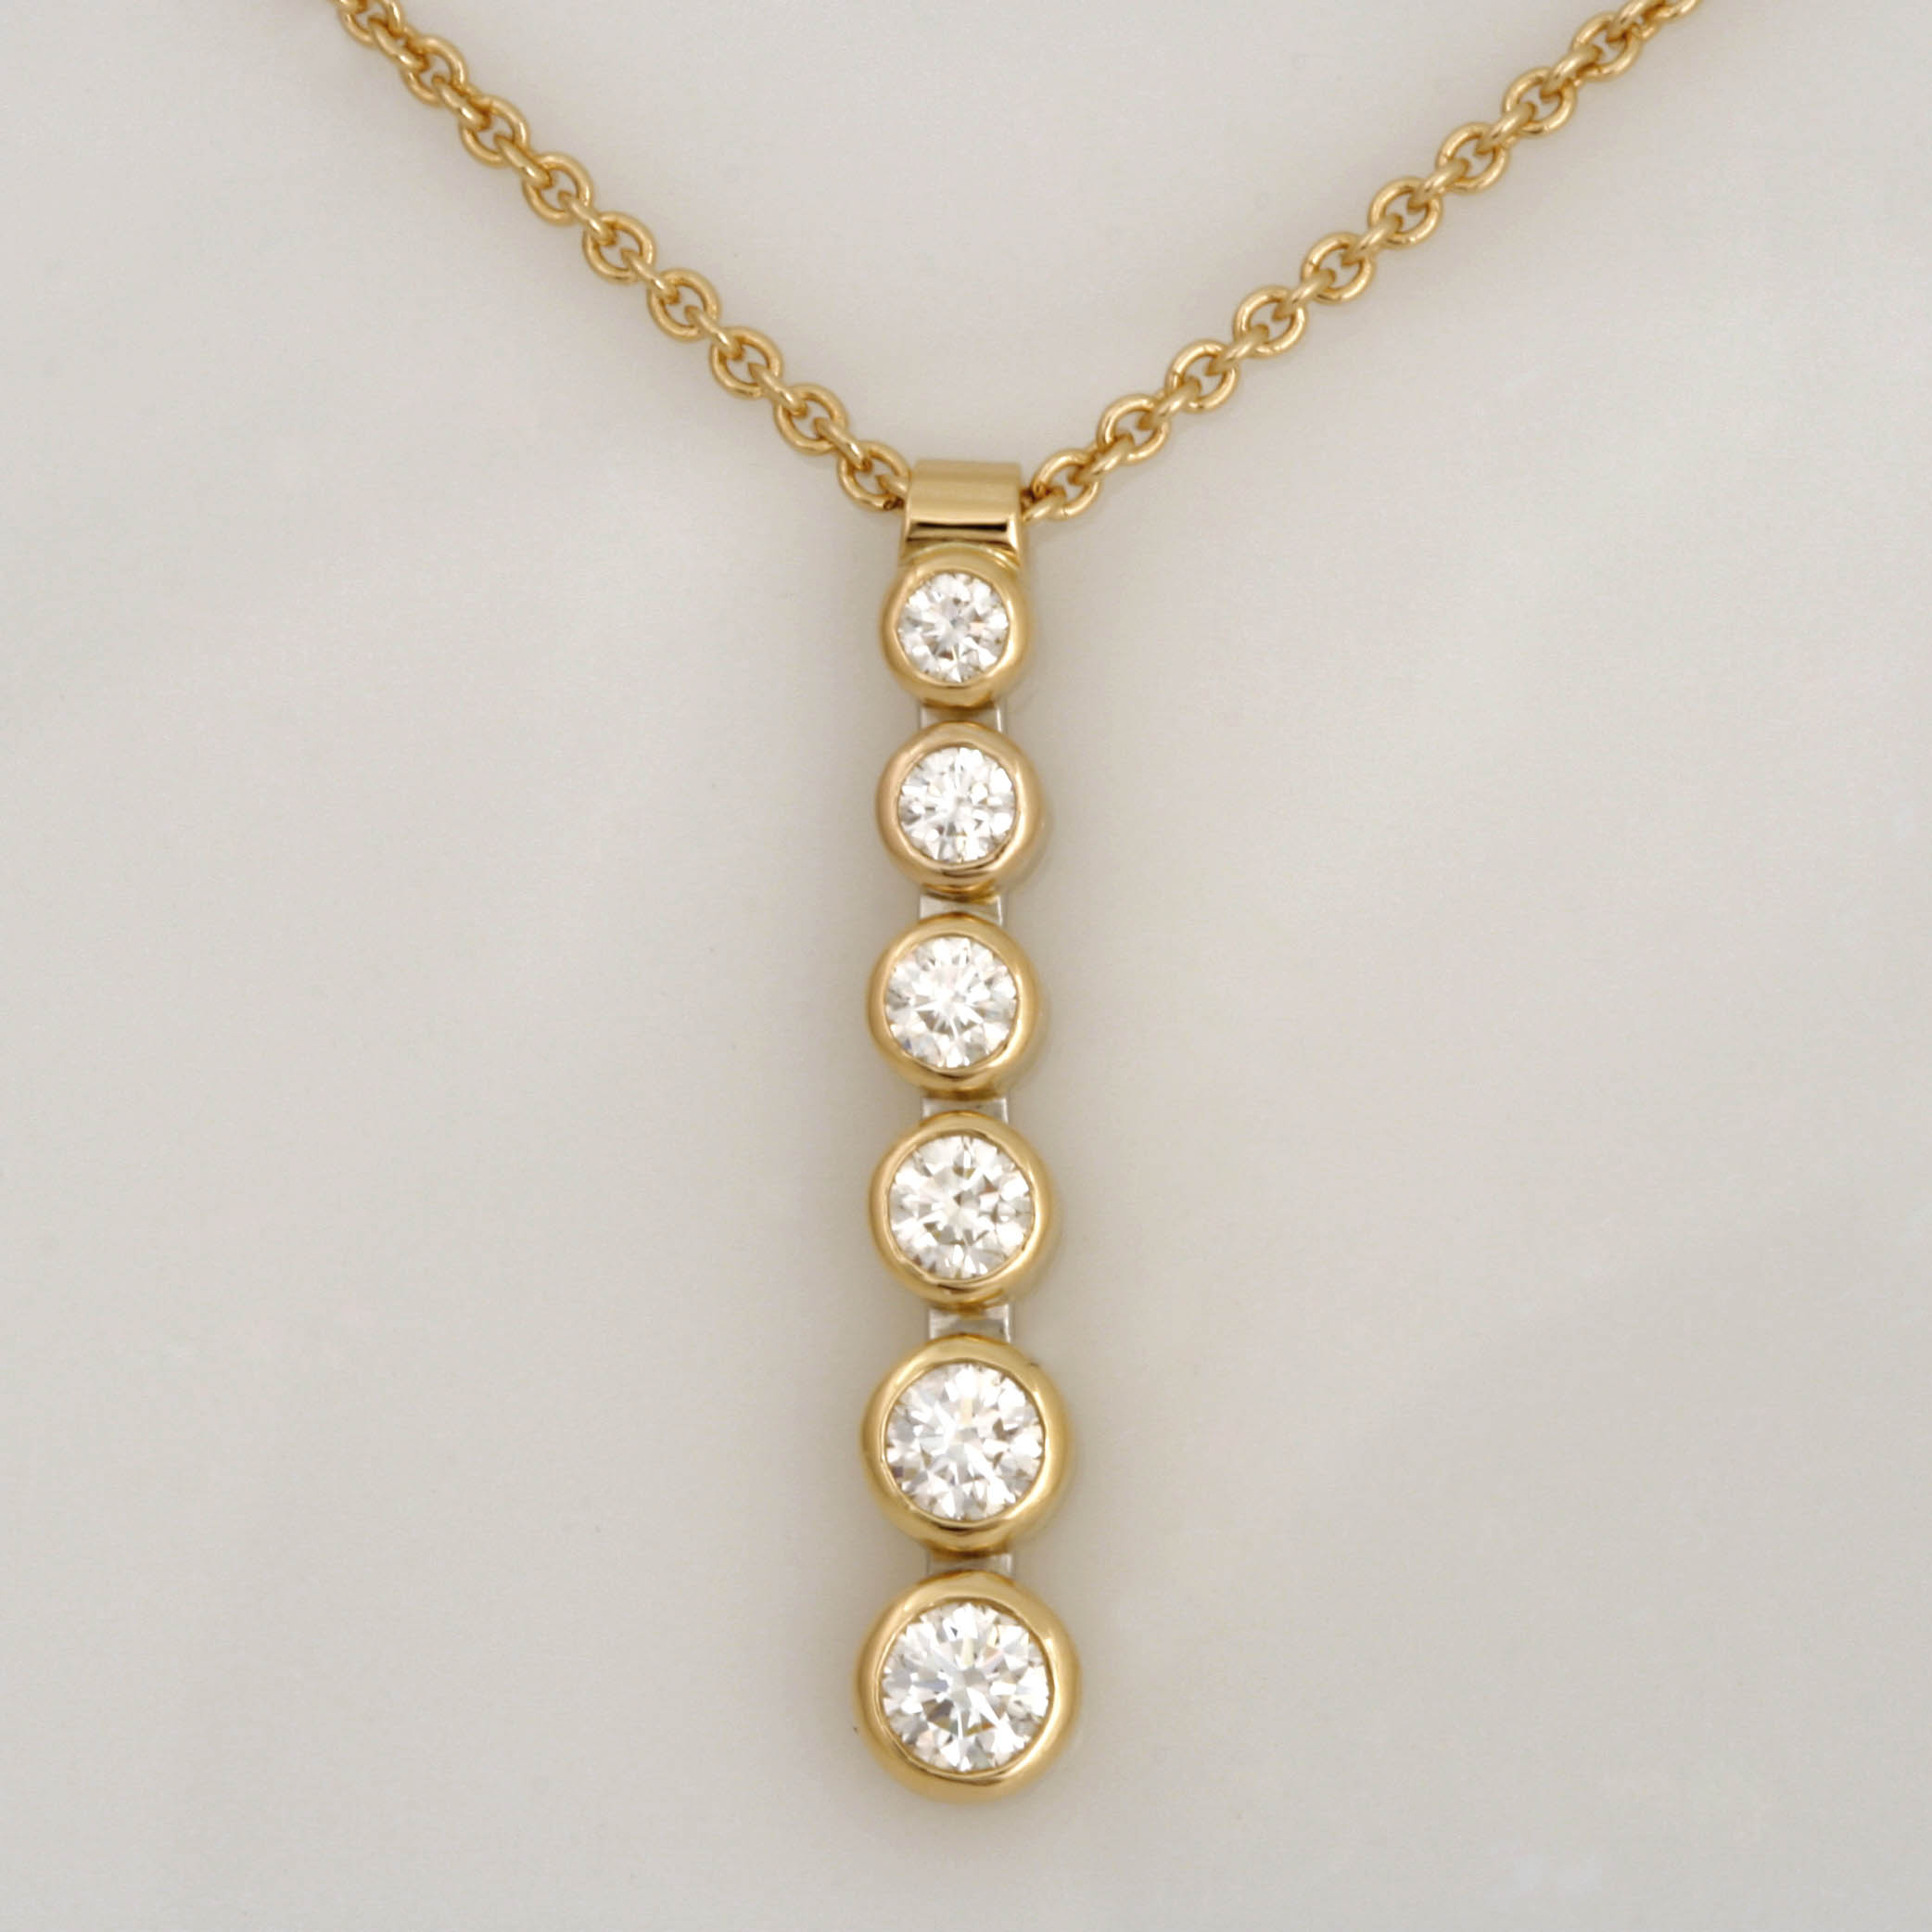 Handmade ladies 18ct yellow gold and platinum diamond pendant and chain.